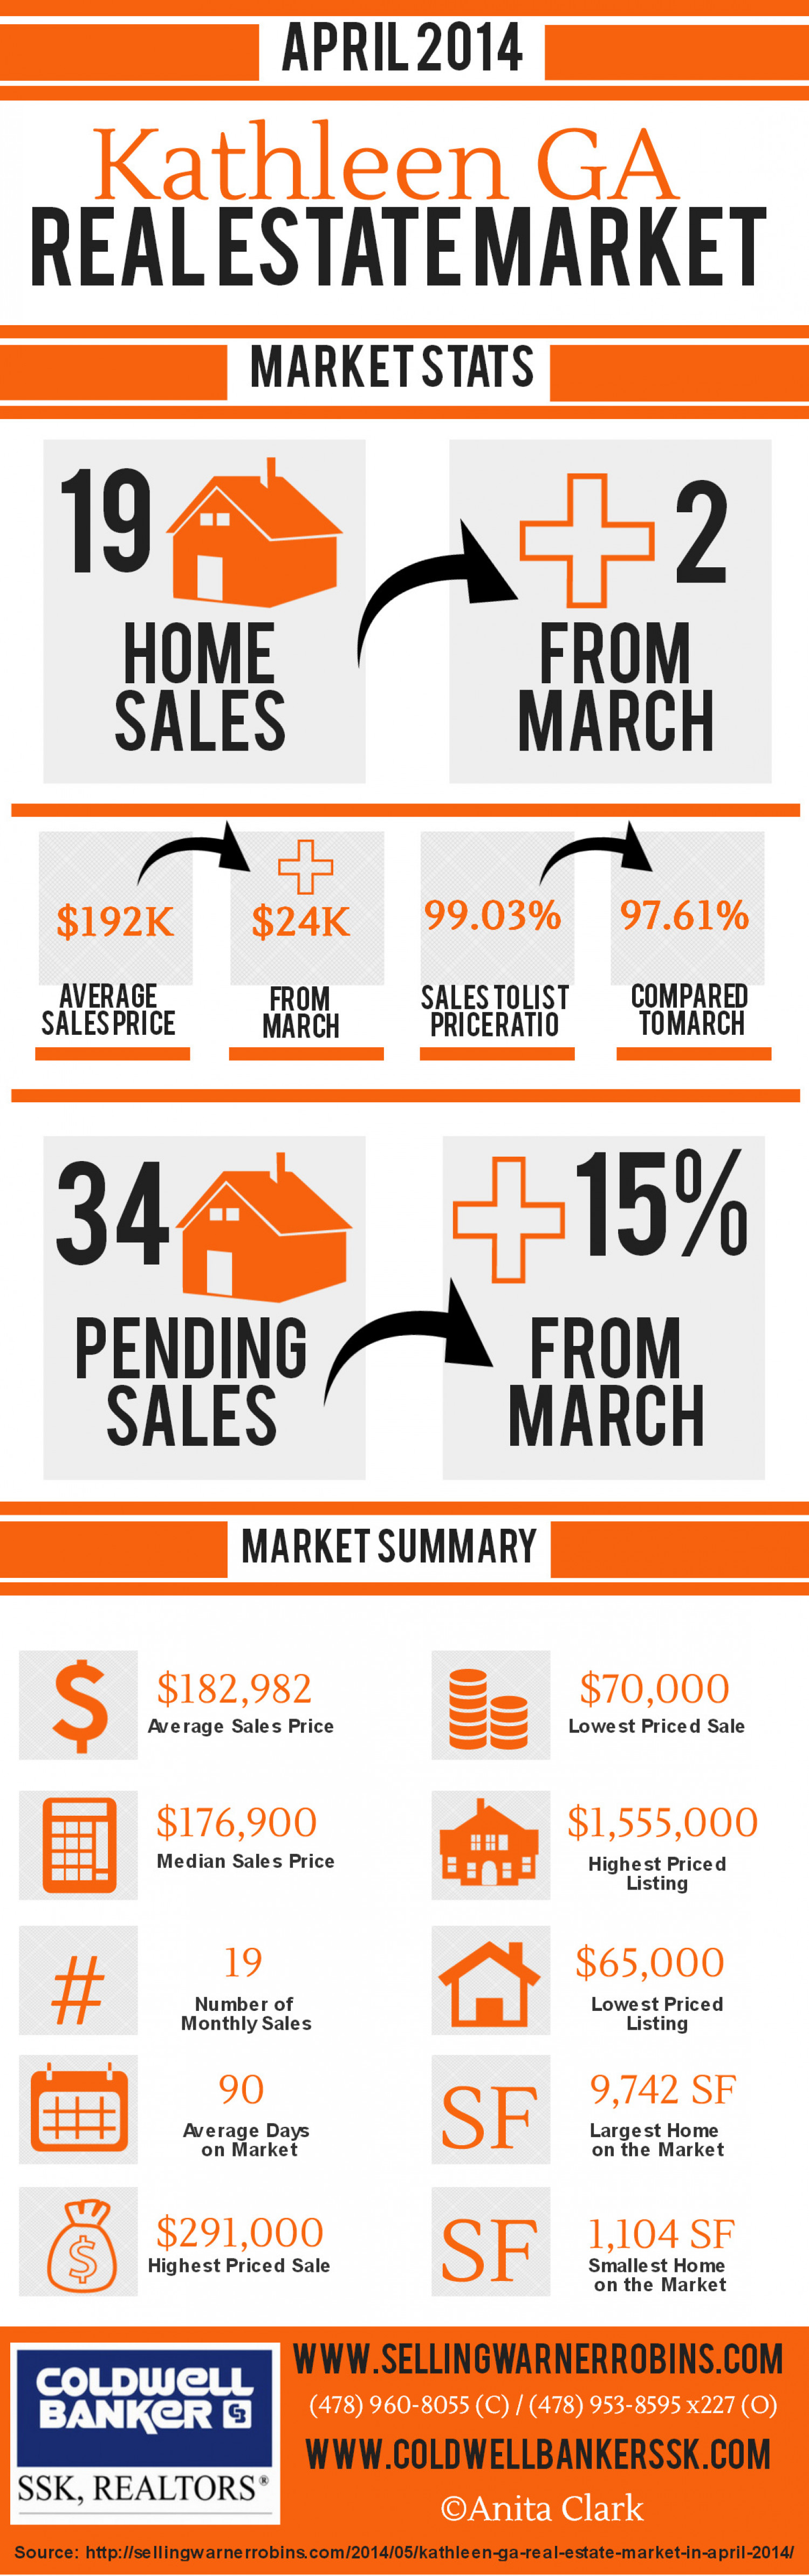 Kathleen GA Real Estate Market in April 2014 Infographic